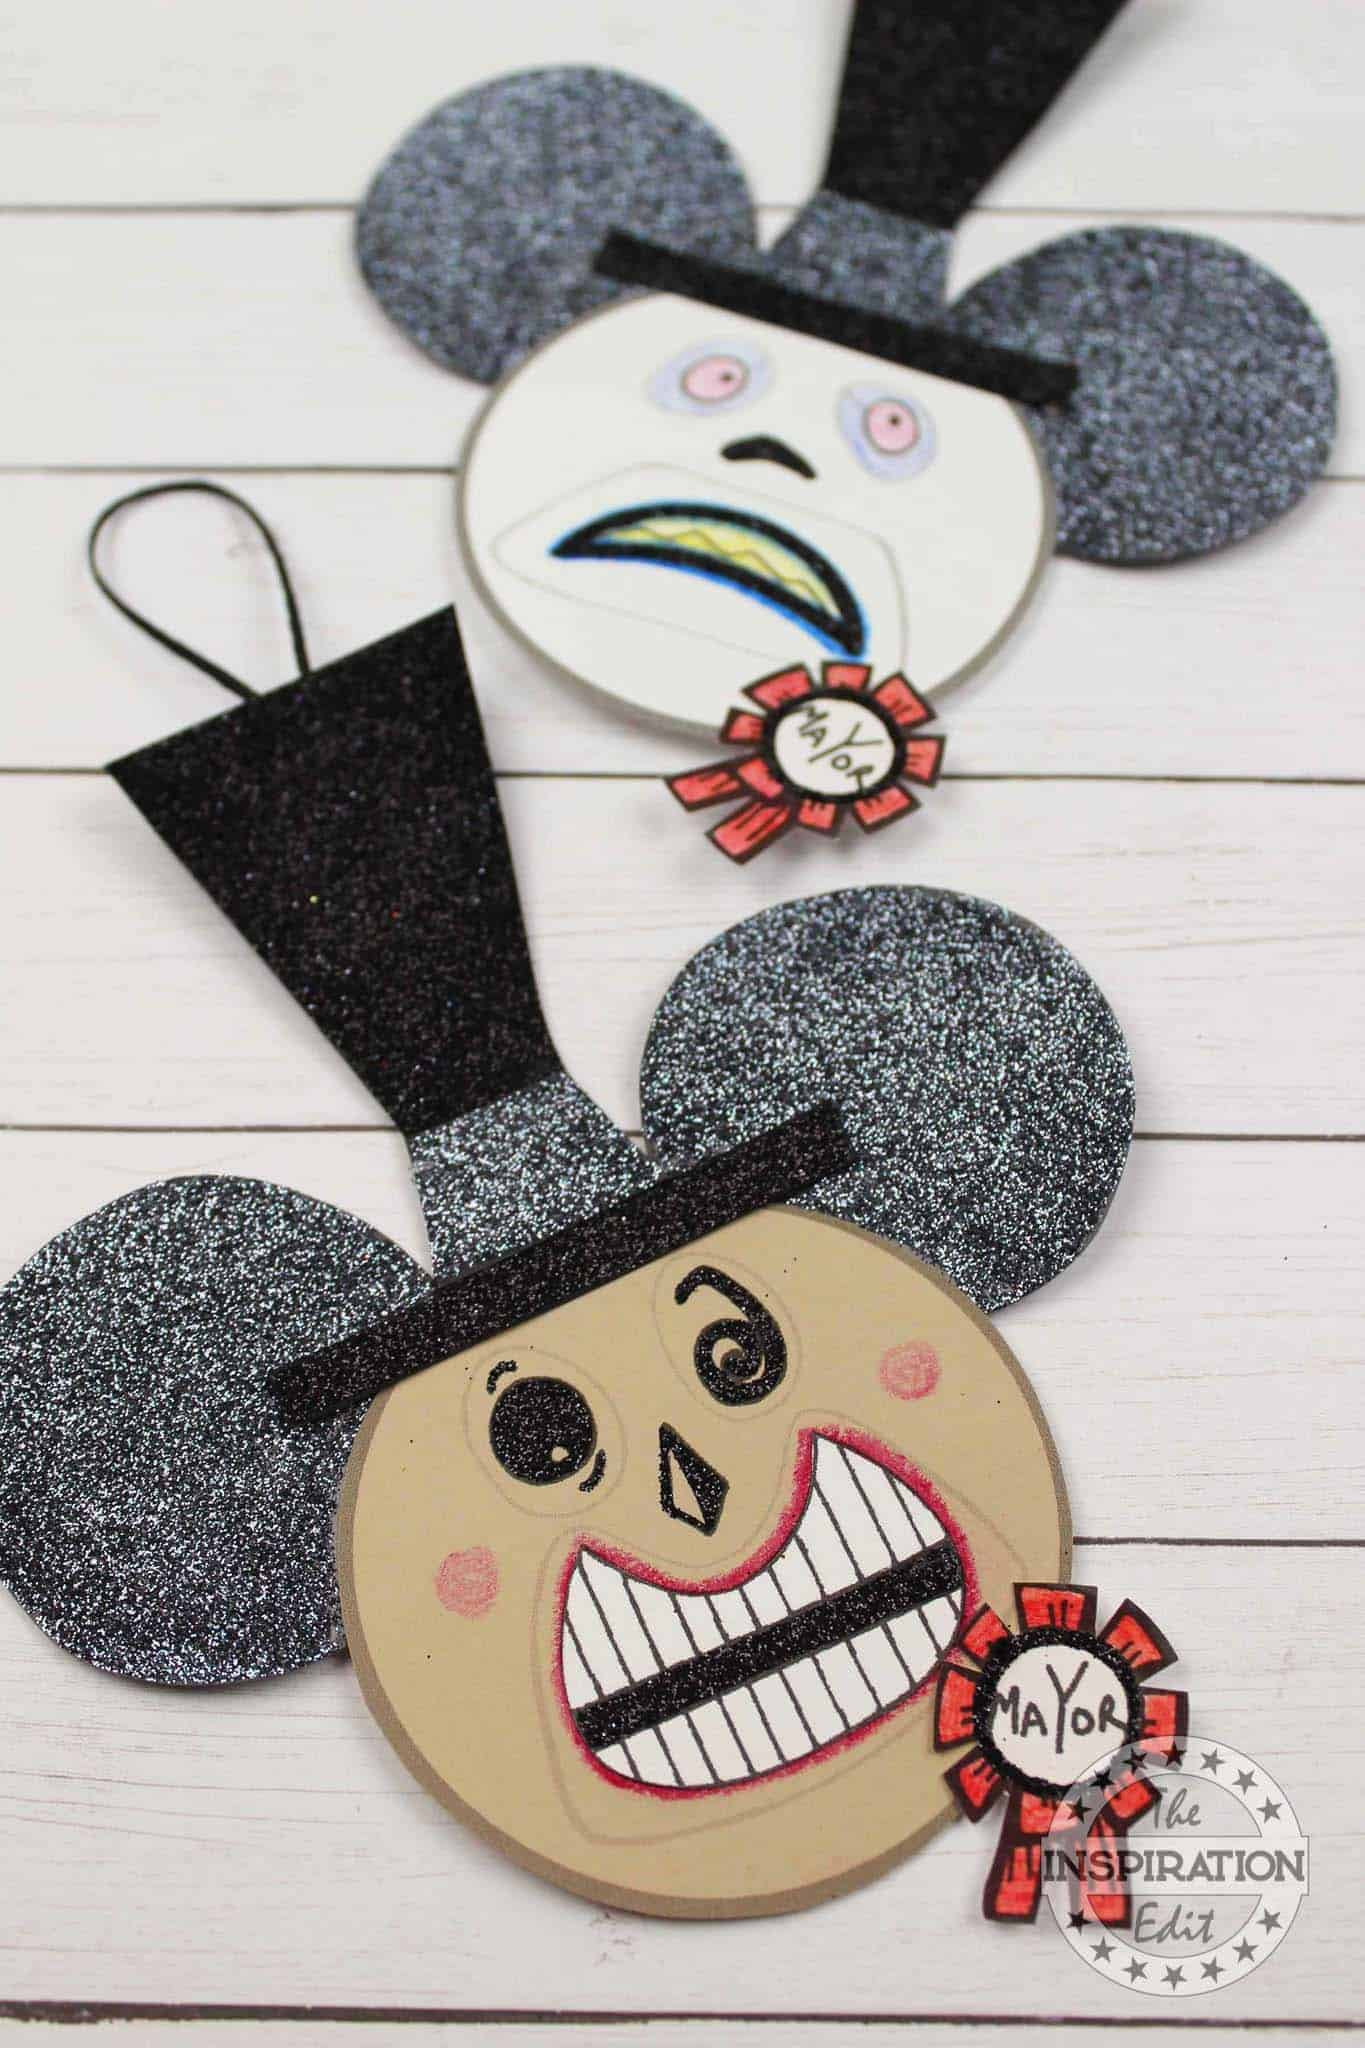 The Nightmare Before Christmas Diy Crafts The Mayor The Inspiration Edit